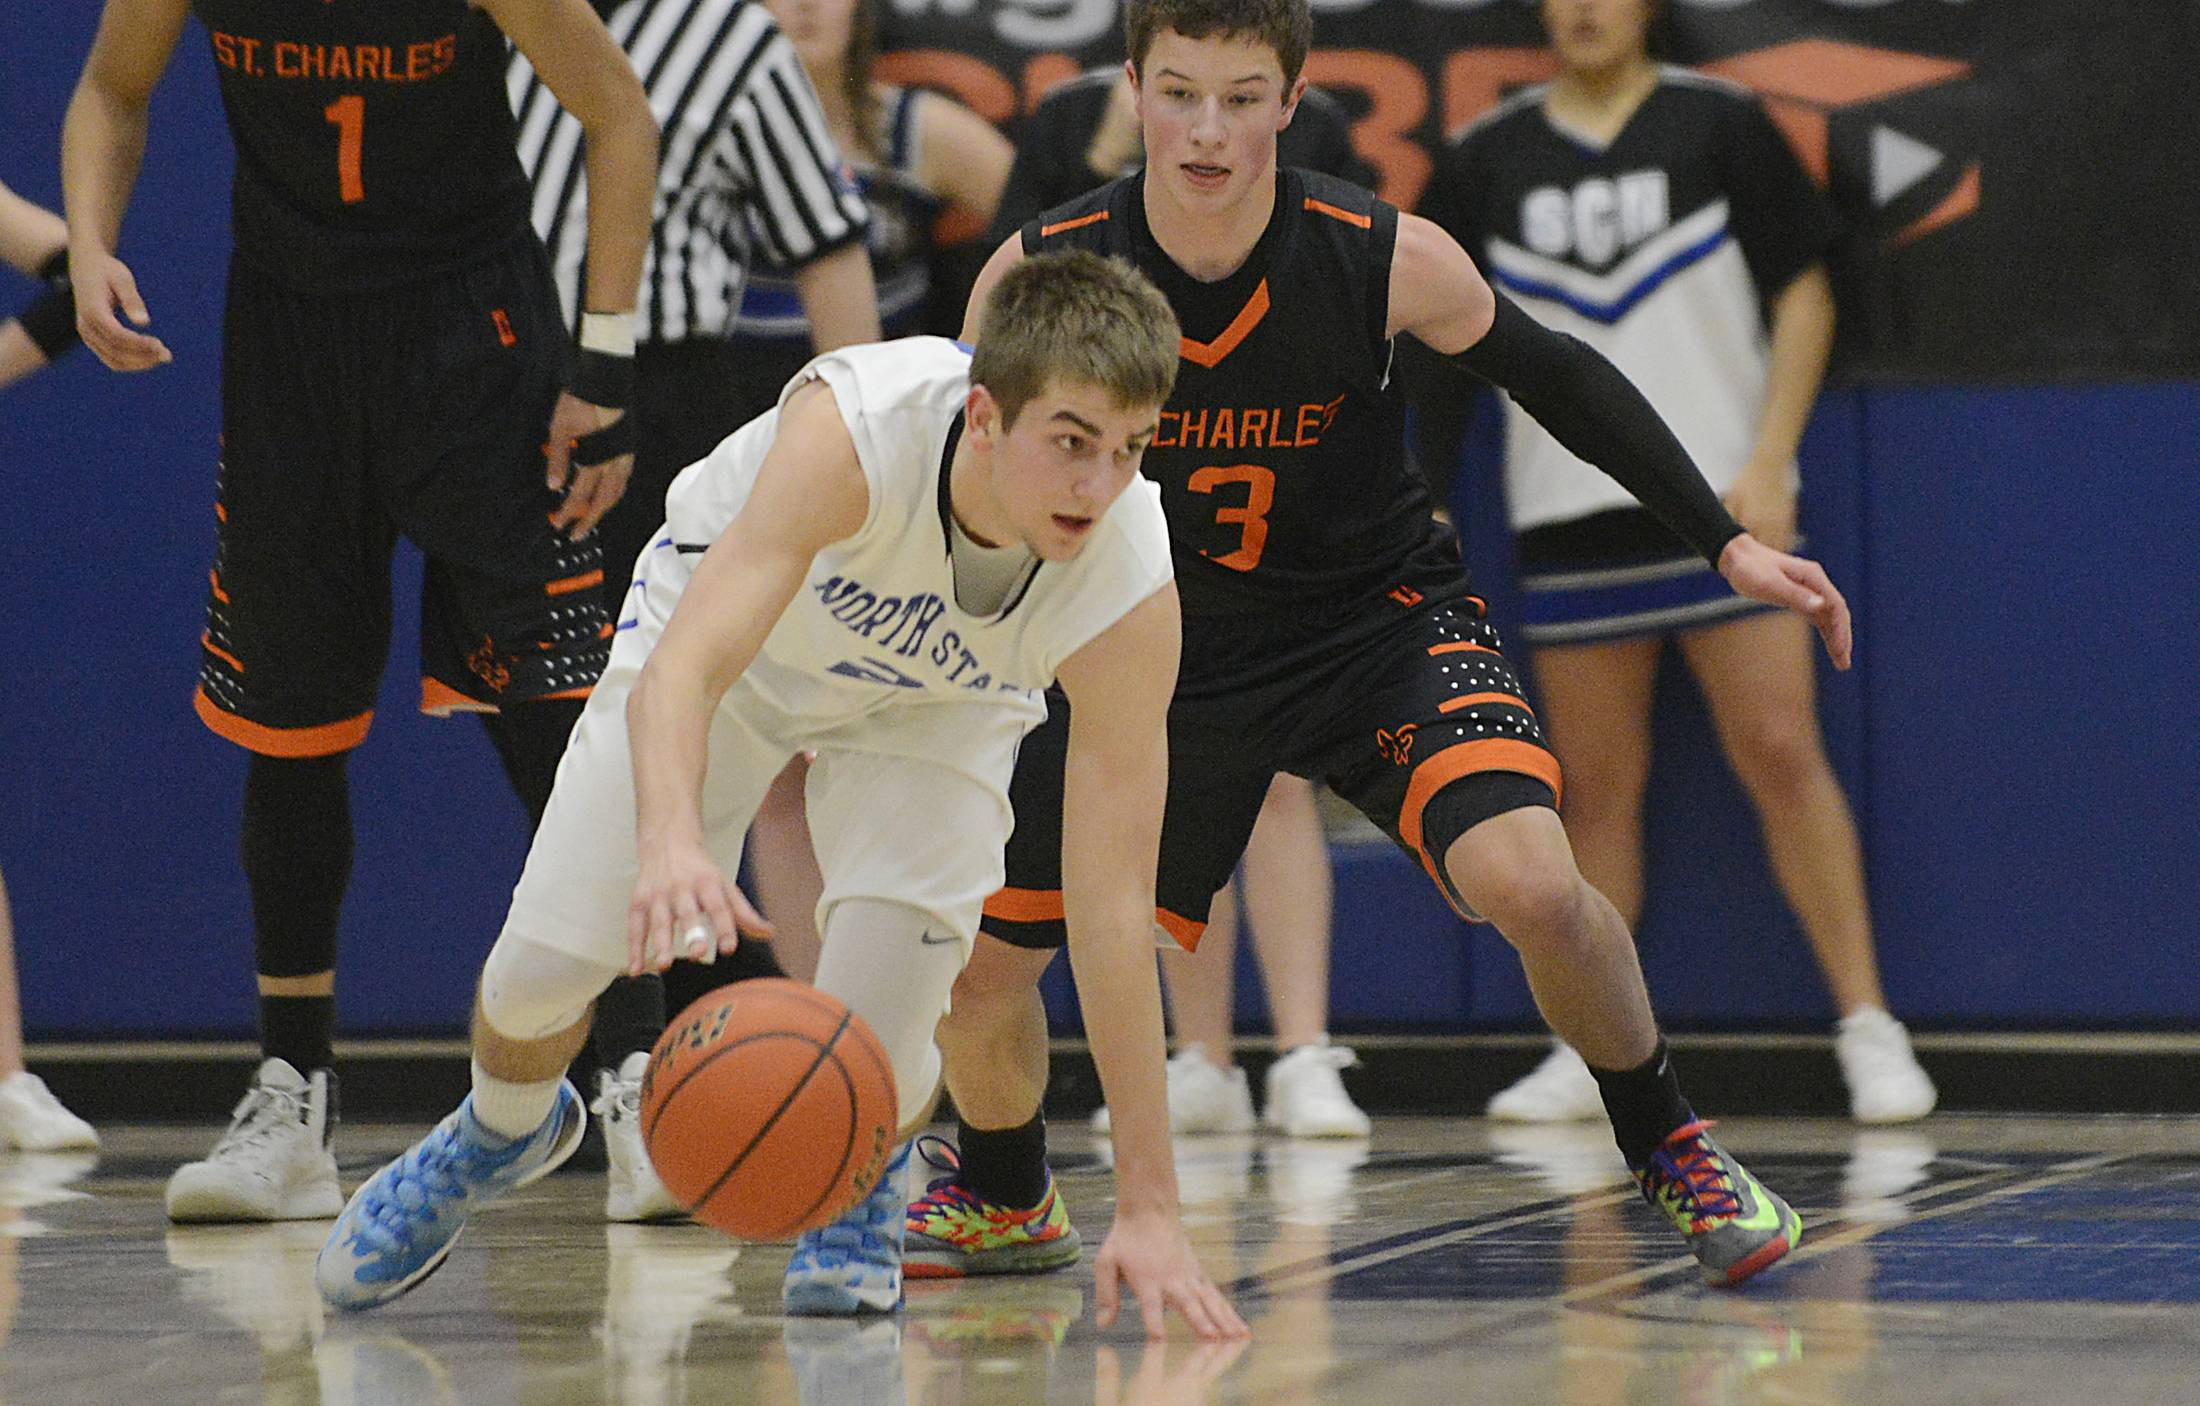 Images from the St. Charles East vs. St. Charles North boys basketball game Wednesday, March 5, 2014.